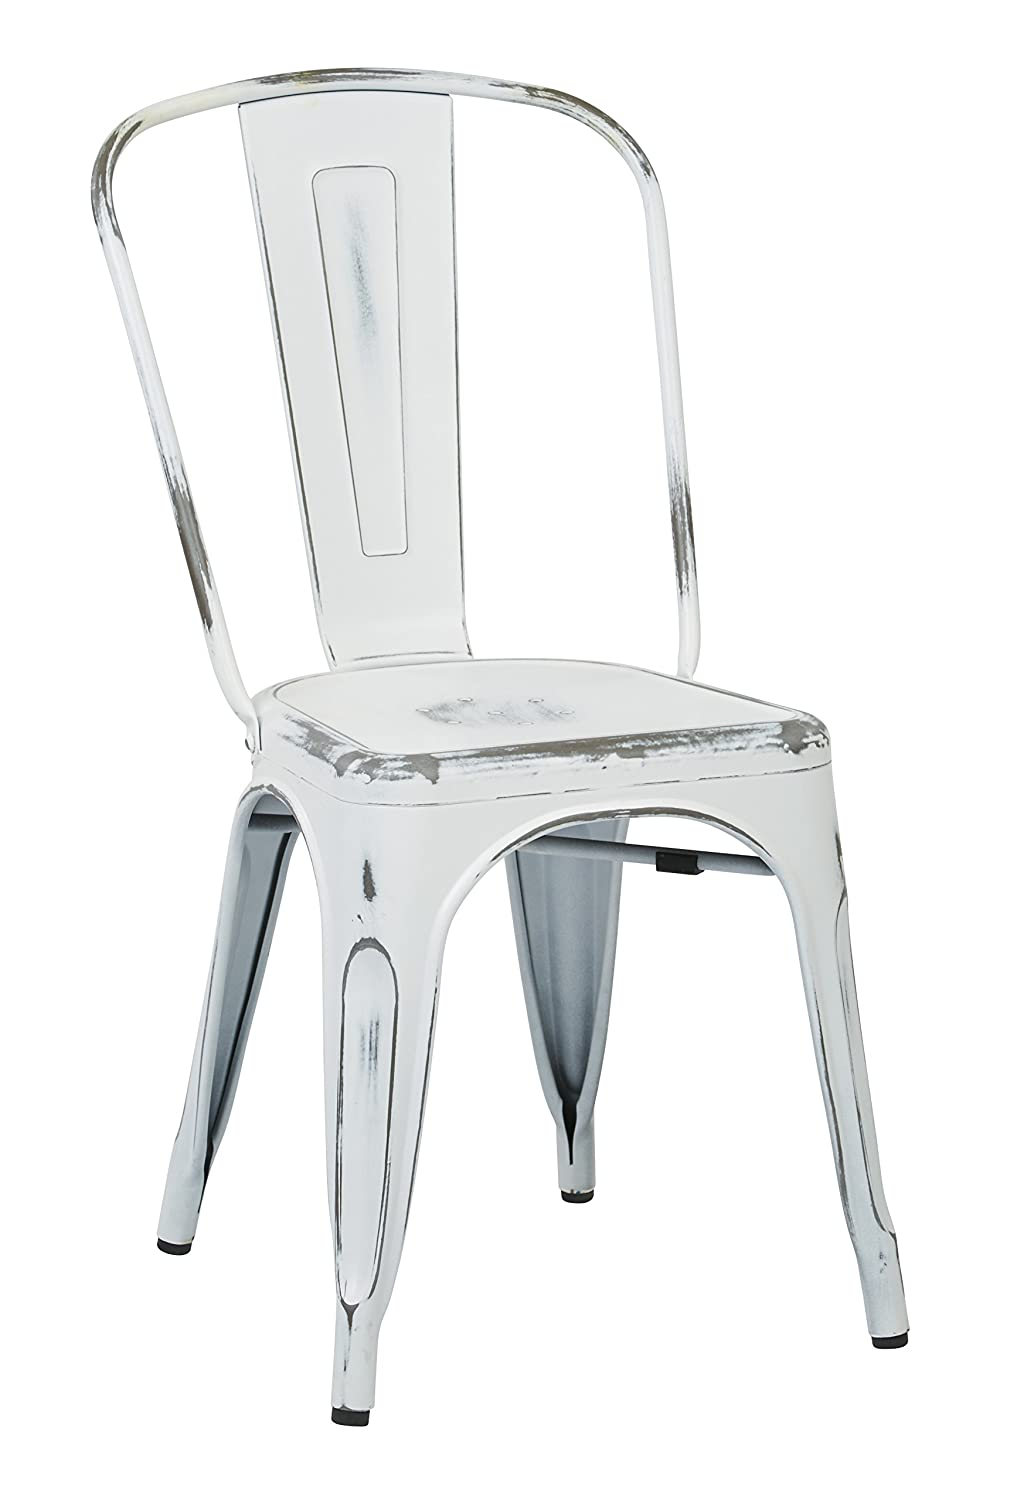 Amazon.com: Office Star Bristow Metal Seat and Back Armless Chair, Antique  White, 2-Pack: Kitchen & Dining - Amazon.com: Office Star Bristow Metal Seat And Back Armless Chair